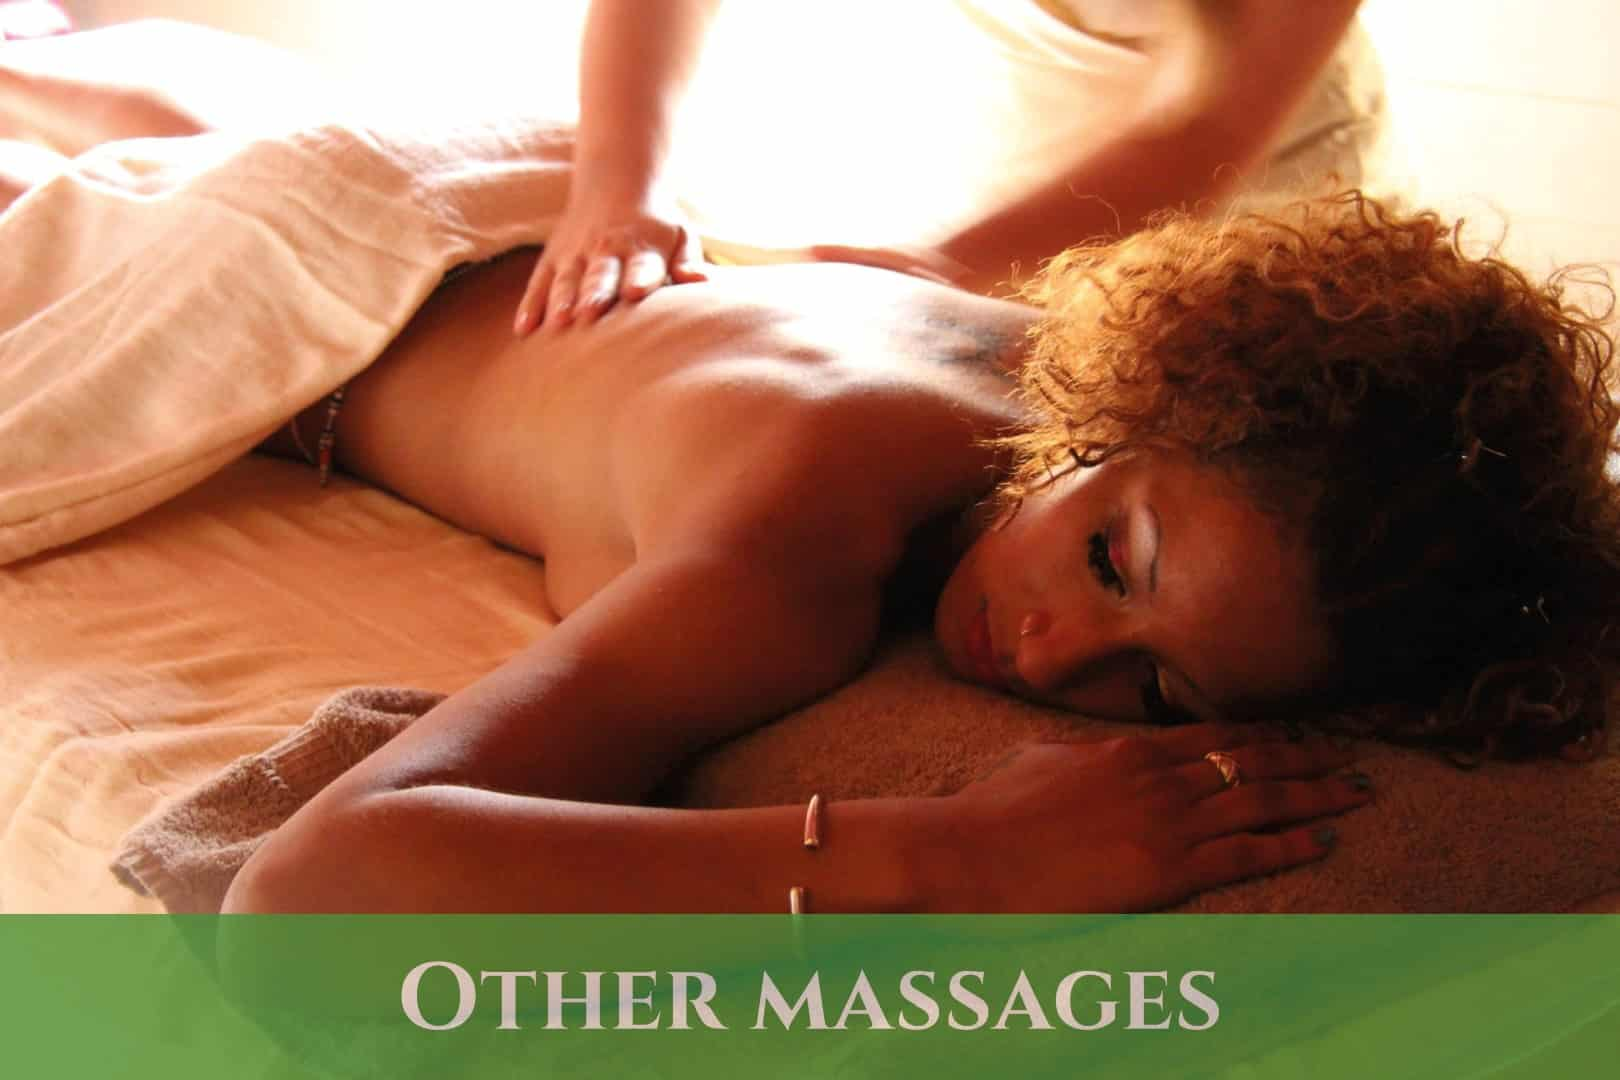 Other massages_Pommenial de la Hérissonnière